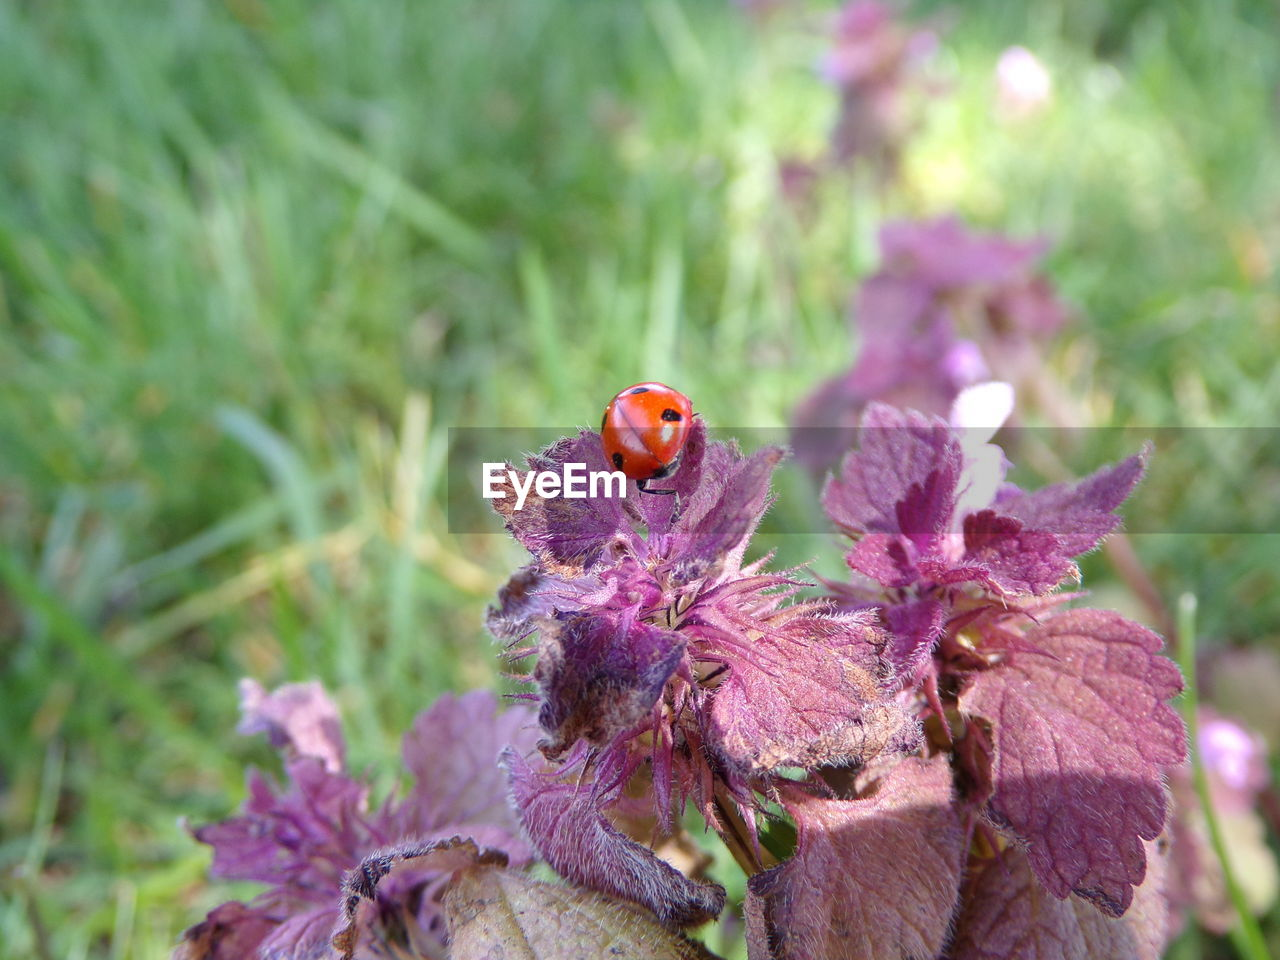 flowering plant, flower, animal themes, plant, animal, insect, beauty in nature, invertebrate, fragility, one animal, vulnerability, animal wildlife, animals in the wild, freshness, close-up, petal, growth, flower head, nature, no people, purple, pollination, pollen, butterfly - insect